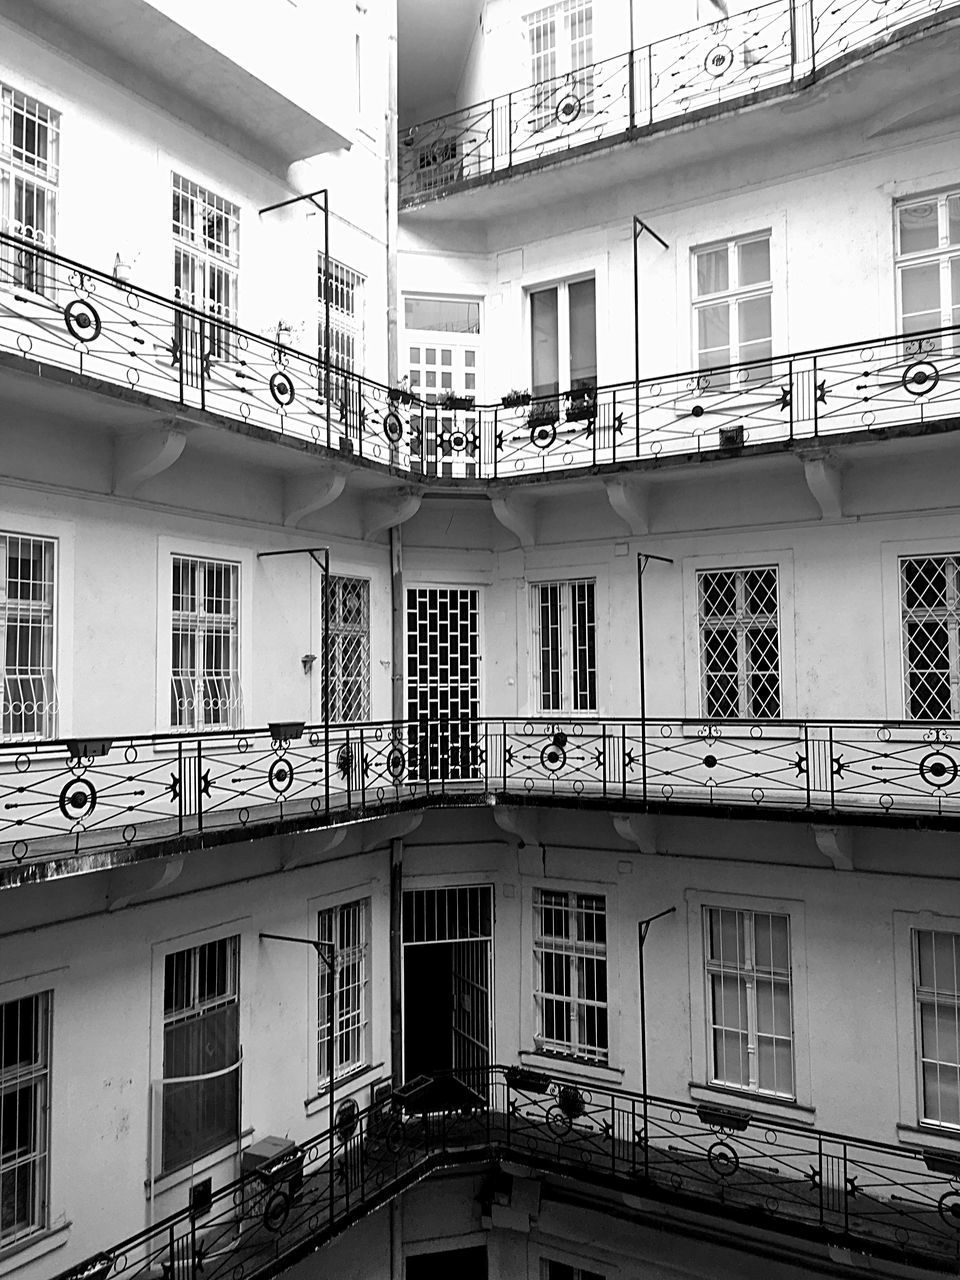 building exterior, architecture, built structure, window, building, residential district, balcony, no people, railing, low angle view, day, city, outdoors, nature, apartment, side by side, full frame, communication, house, connection